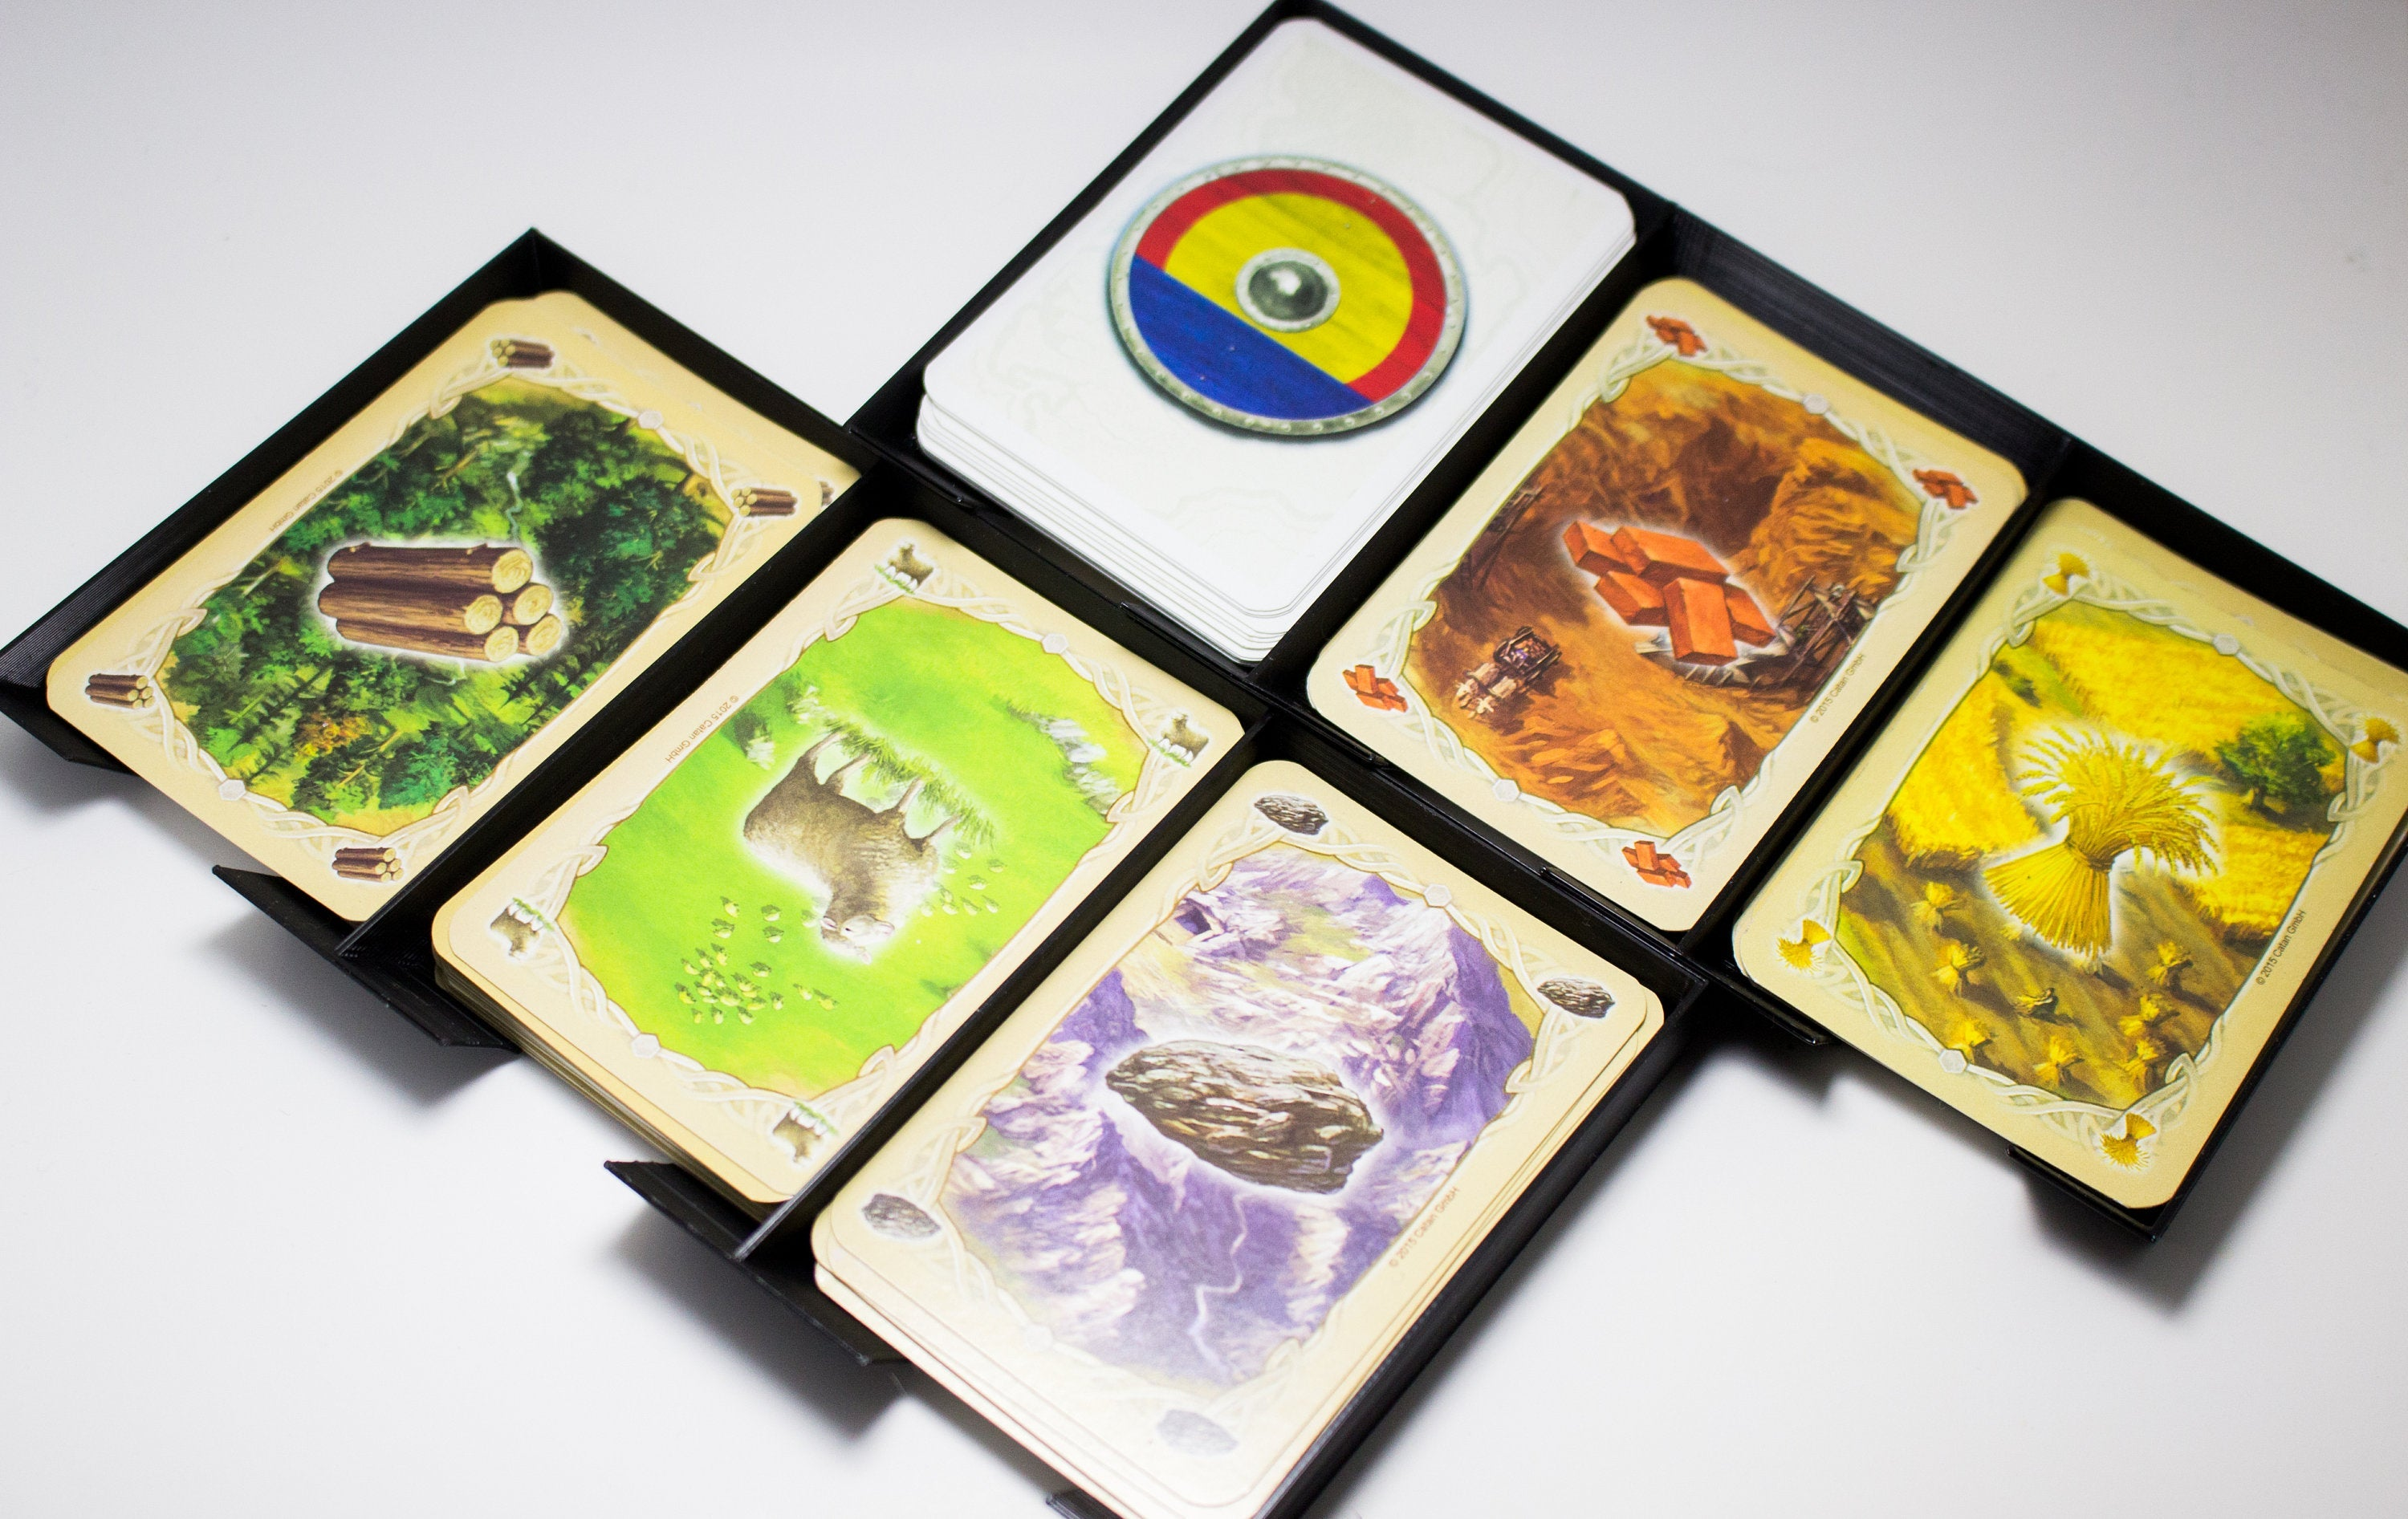 photo about Settlers of Catan Printable identified as Catan Card Holder Tray Organizer 3D Print Settlers of Catan